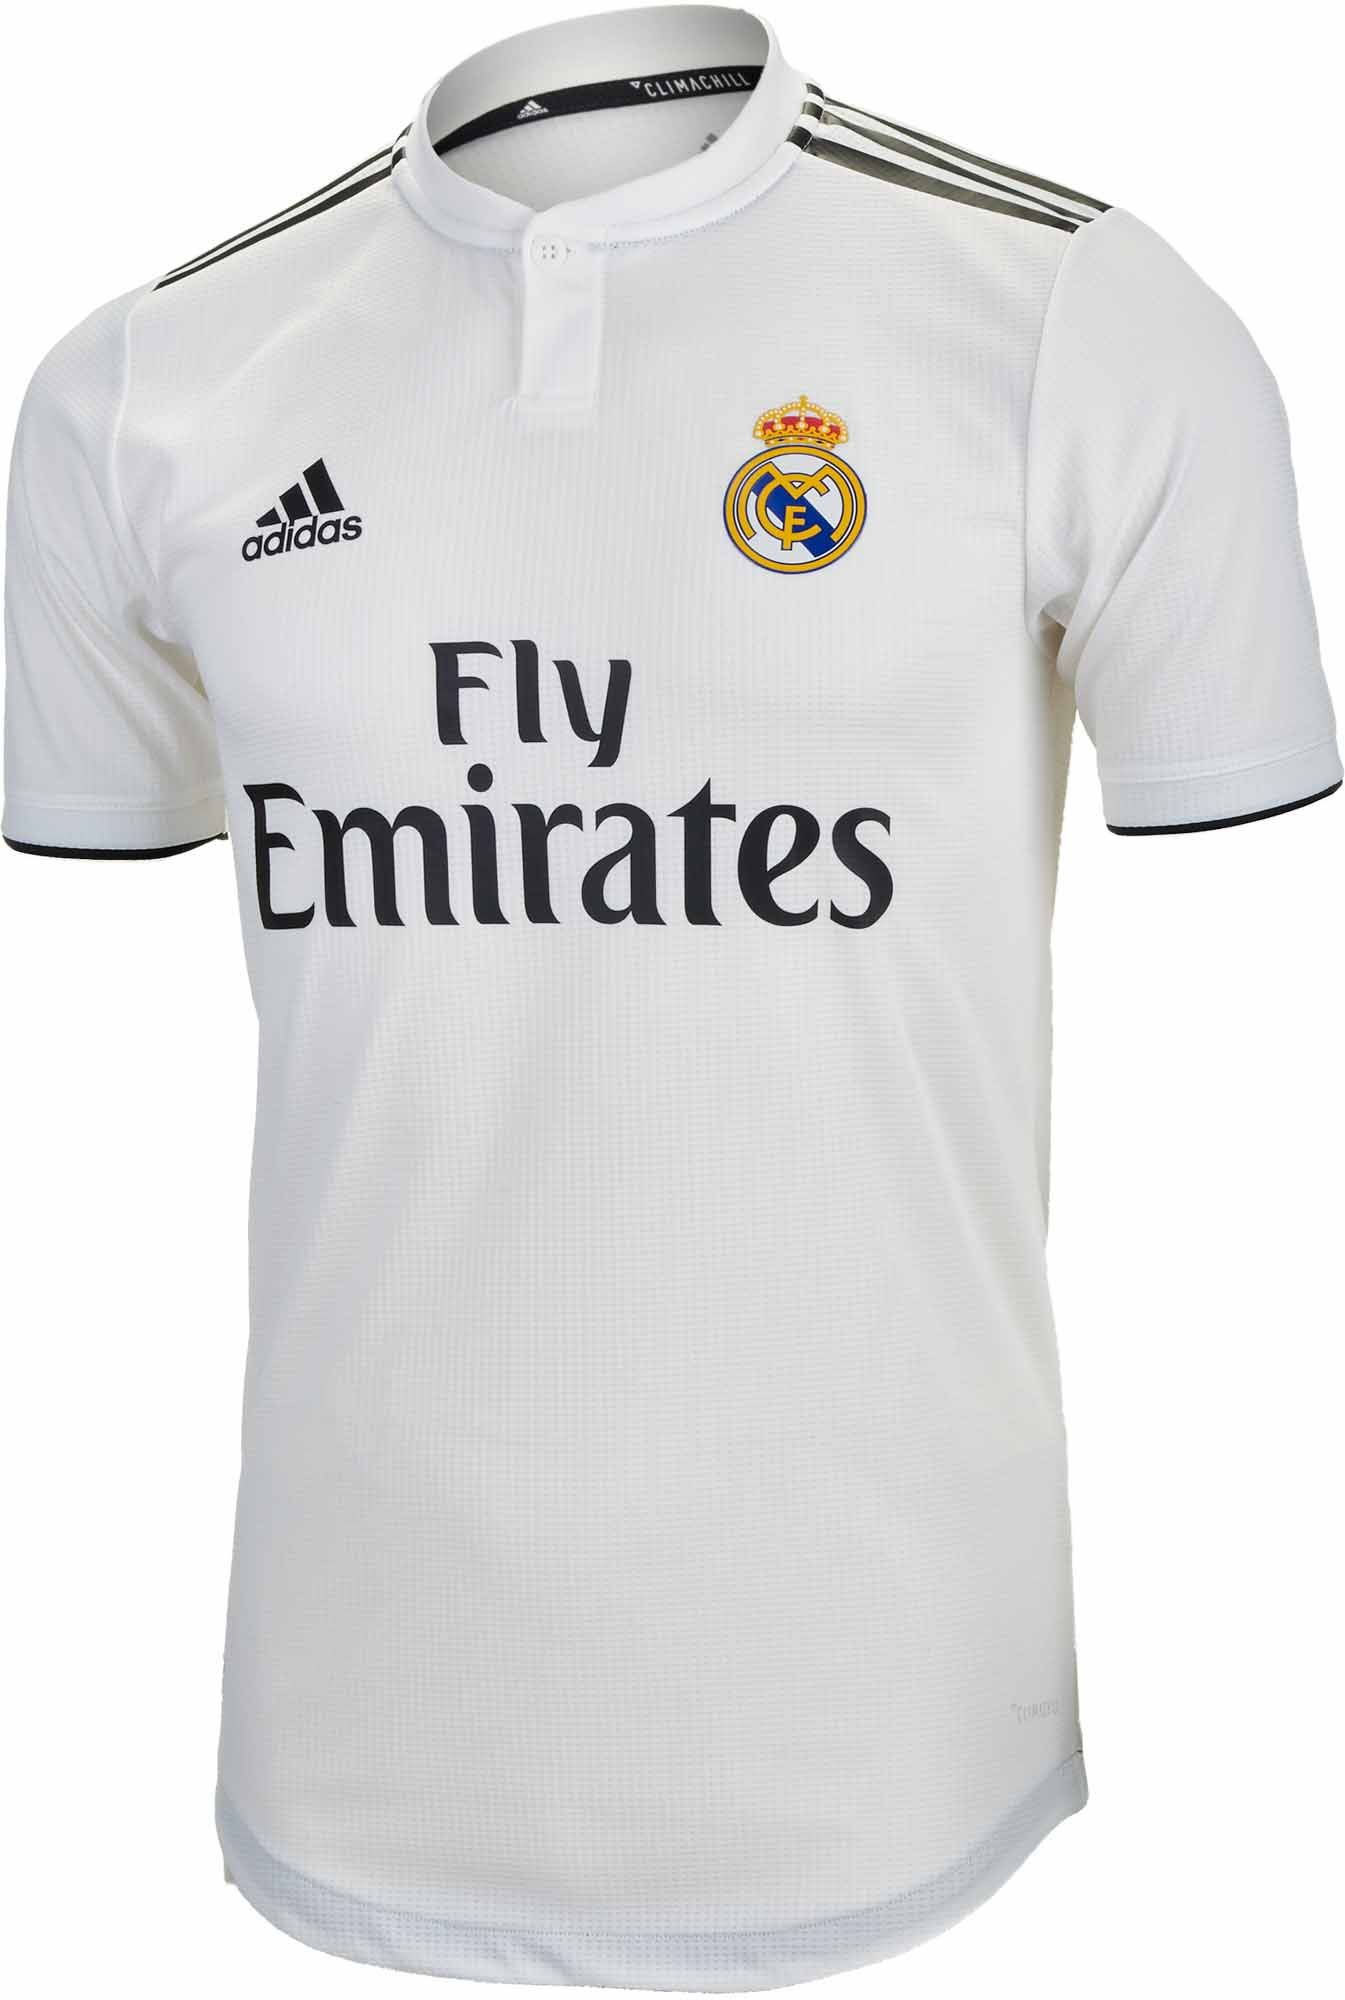 2018 19 adidas Real Madrid Authentic Home Jersey. Fresh at www.soccerpro.com 783c294b55cd5